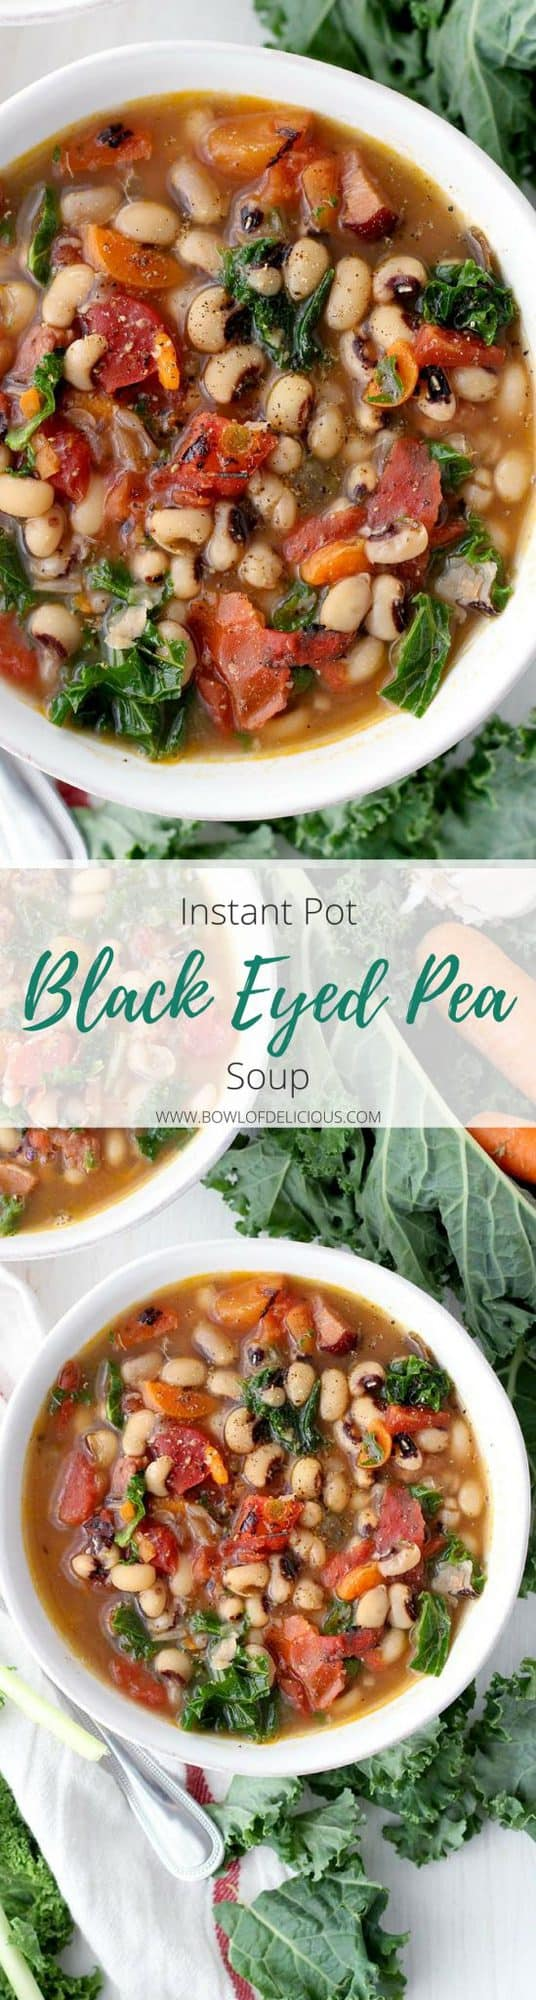 This Instant Pot Black Eyed Pea Soup is an easy and fast way to serve traditional black eyed peas and greens on New Year's day for good luck and good health! Packed with veggies, healthy pulses, freezable, and gluten/dairy free. #blackeyedpeas #glutenfreesoup #instantpot #pressurecooker #freezermeals #newyearsrecipes